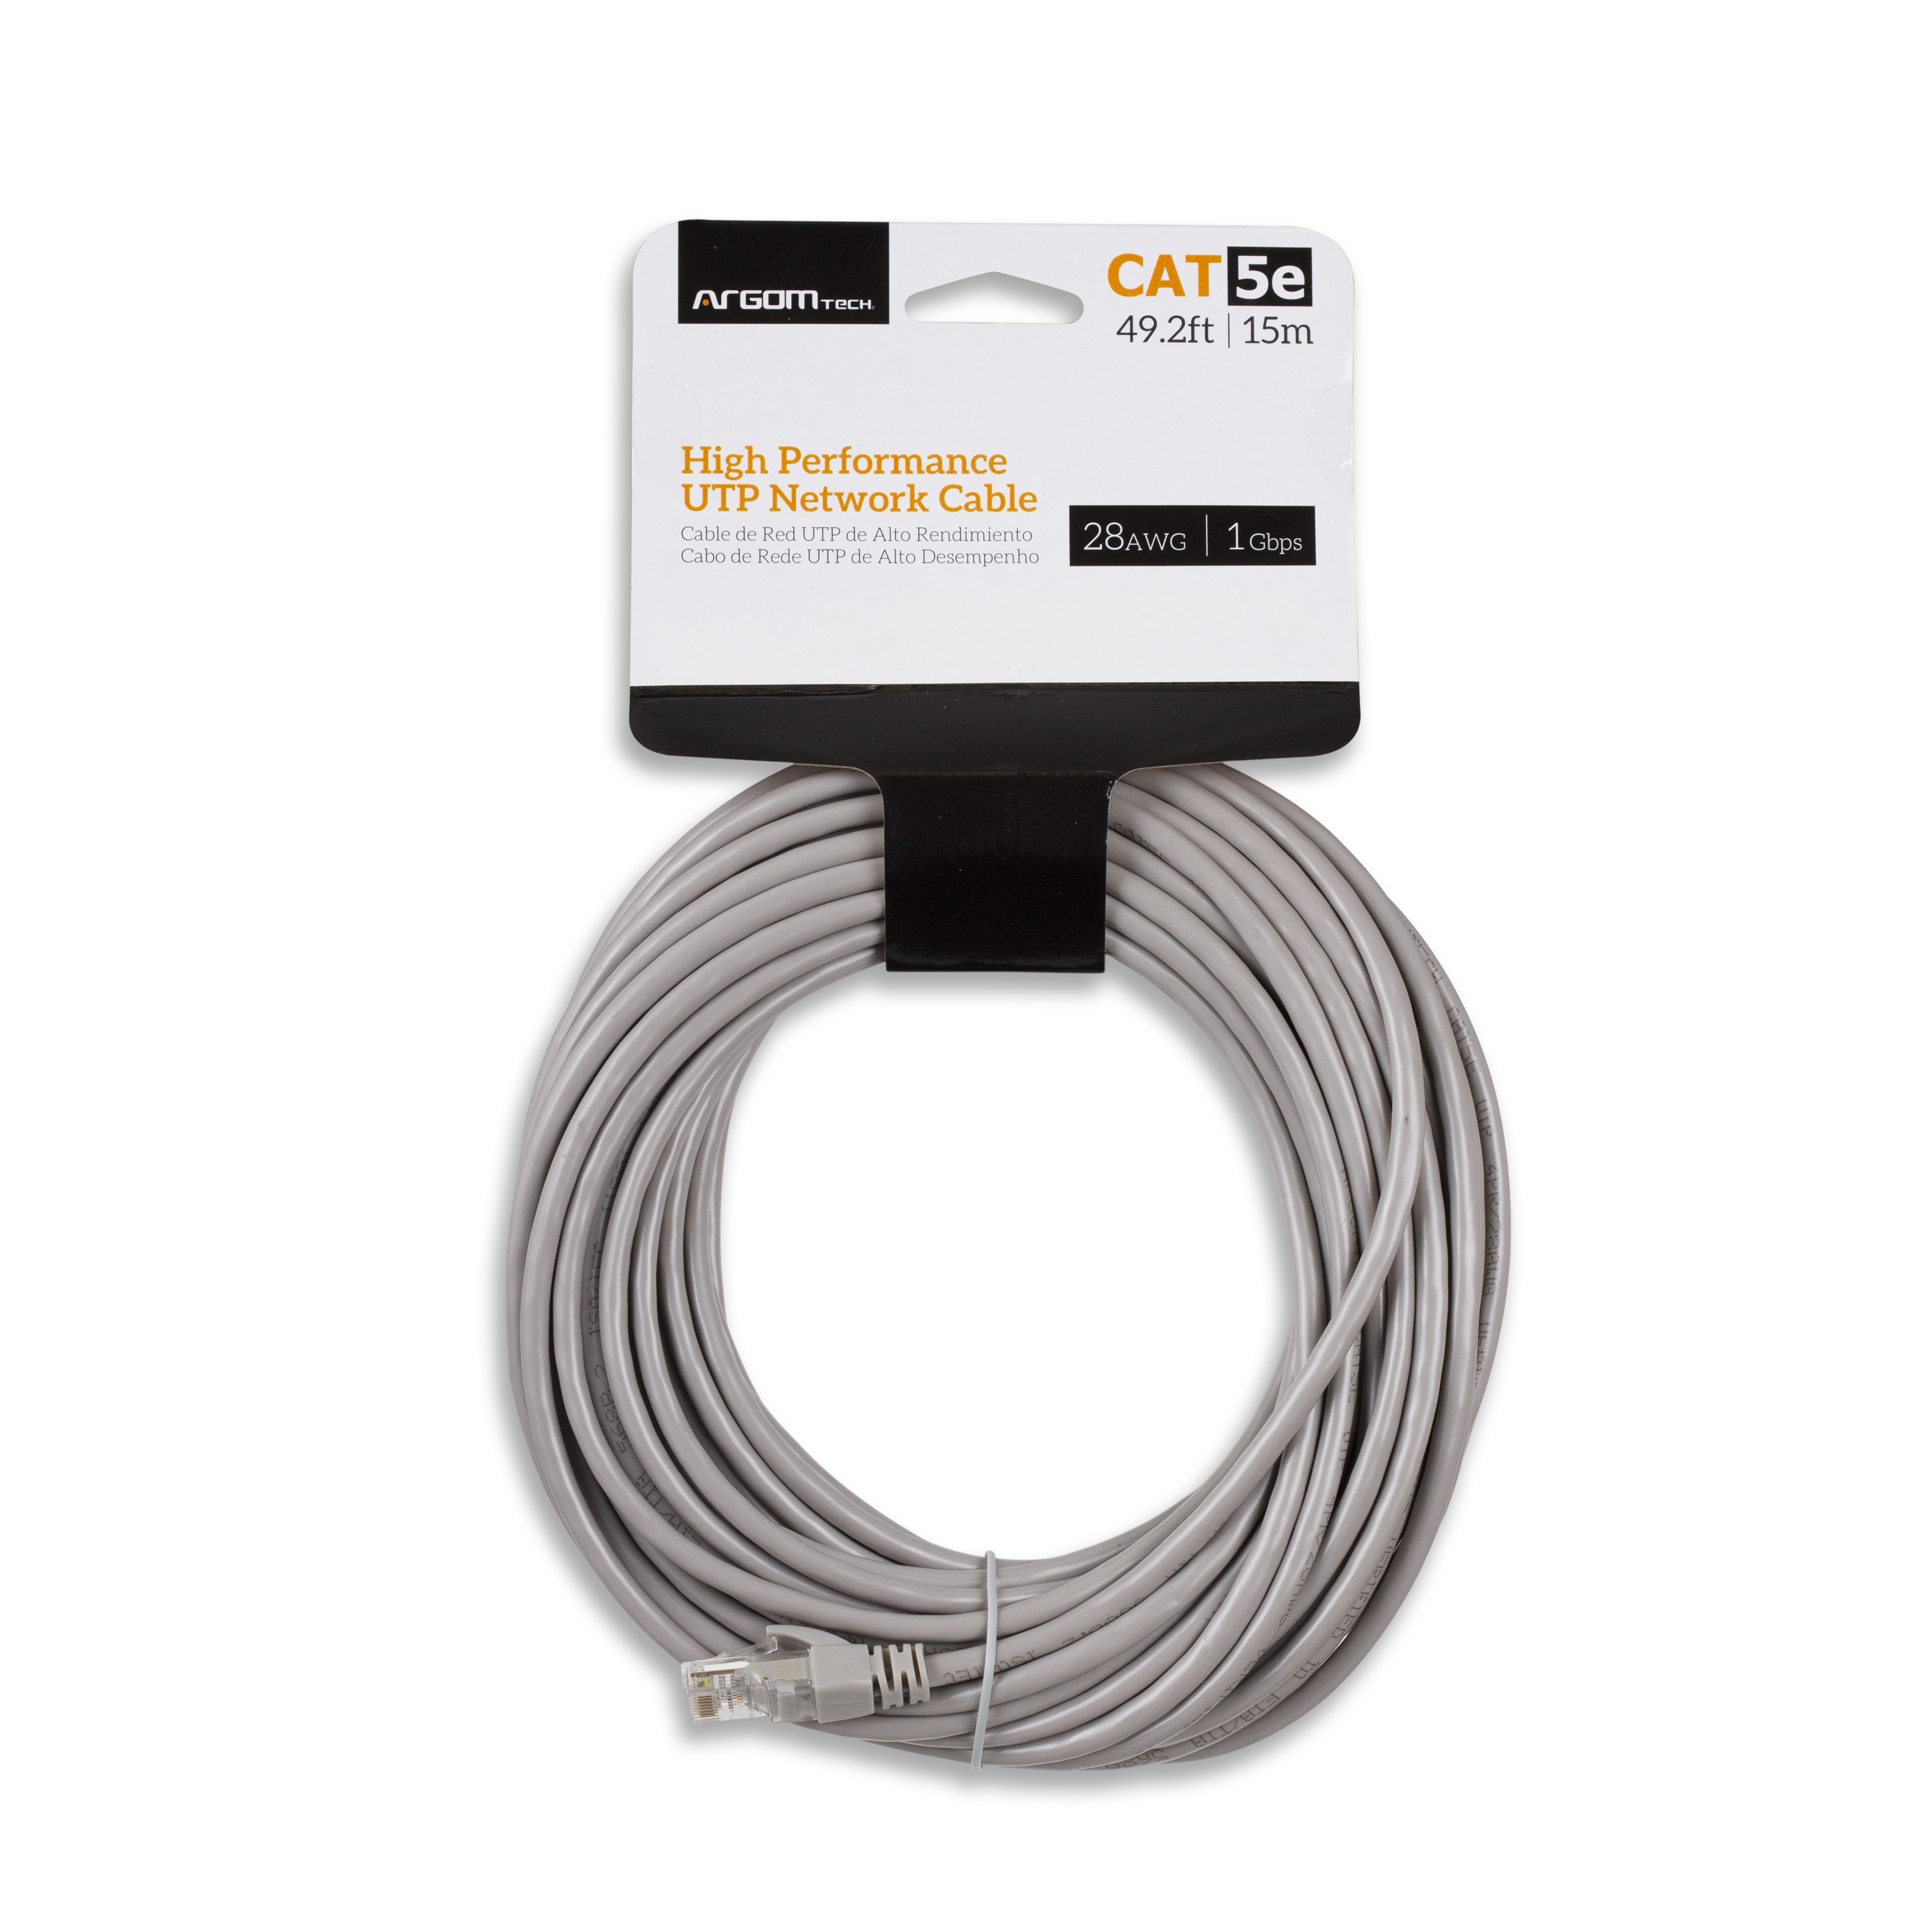 CABLE NETWORK UTP CAT5E 49.2FT/15M